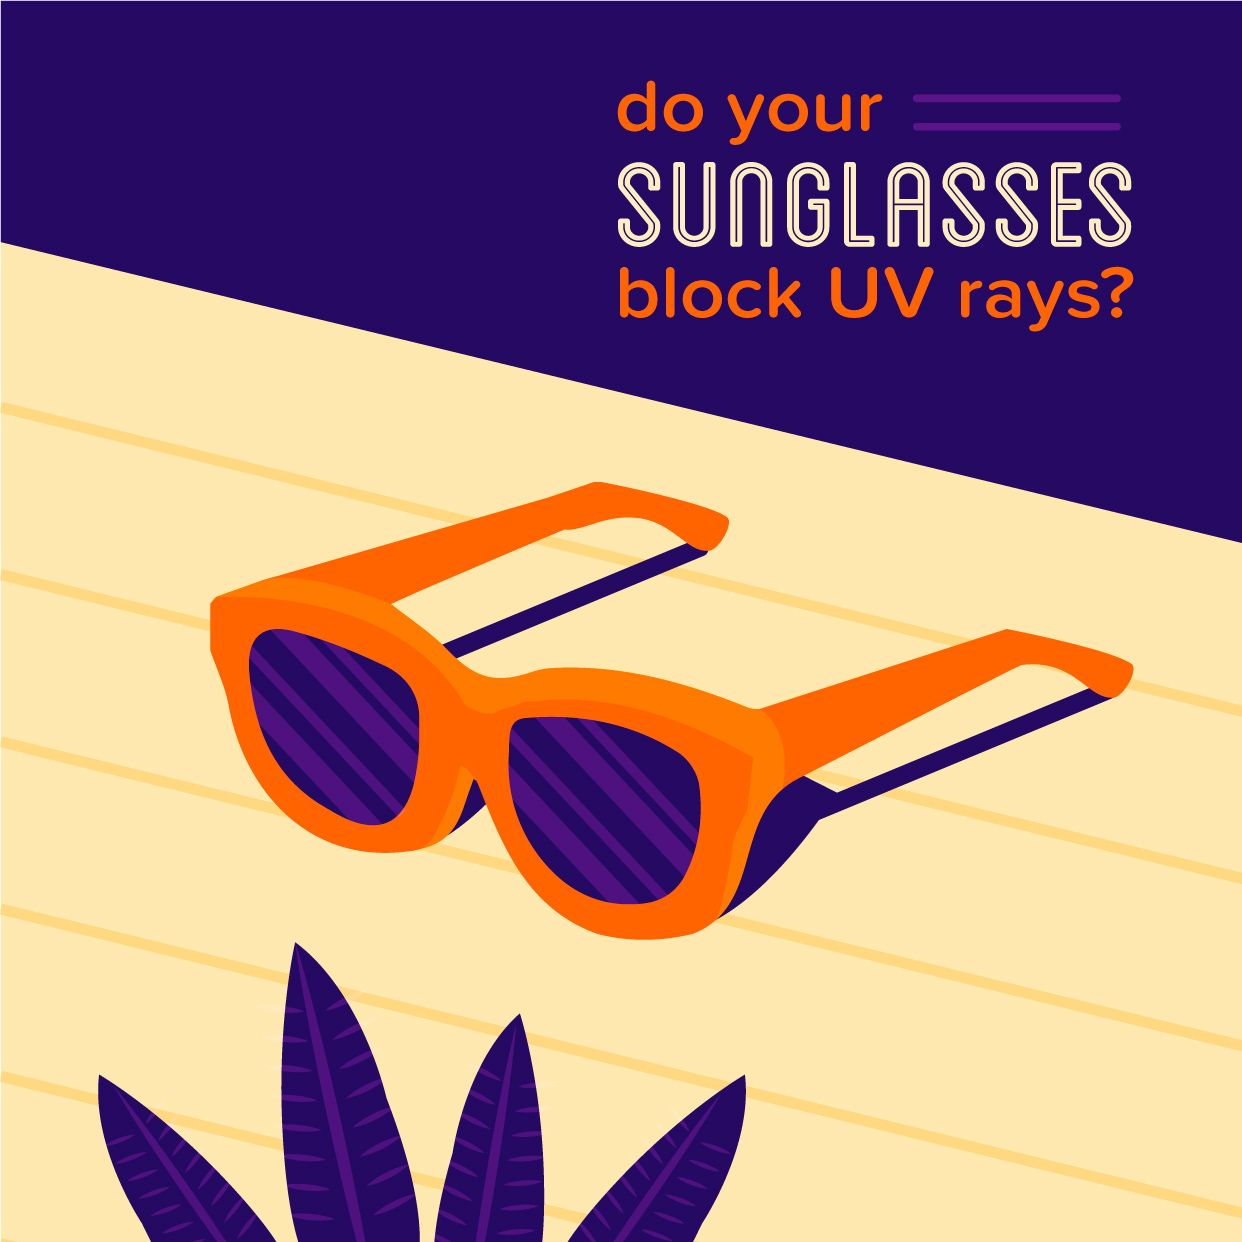 Choose The Right Sunglasses Make Sure They Block 99 To